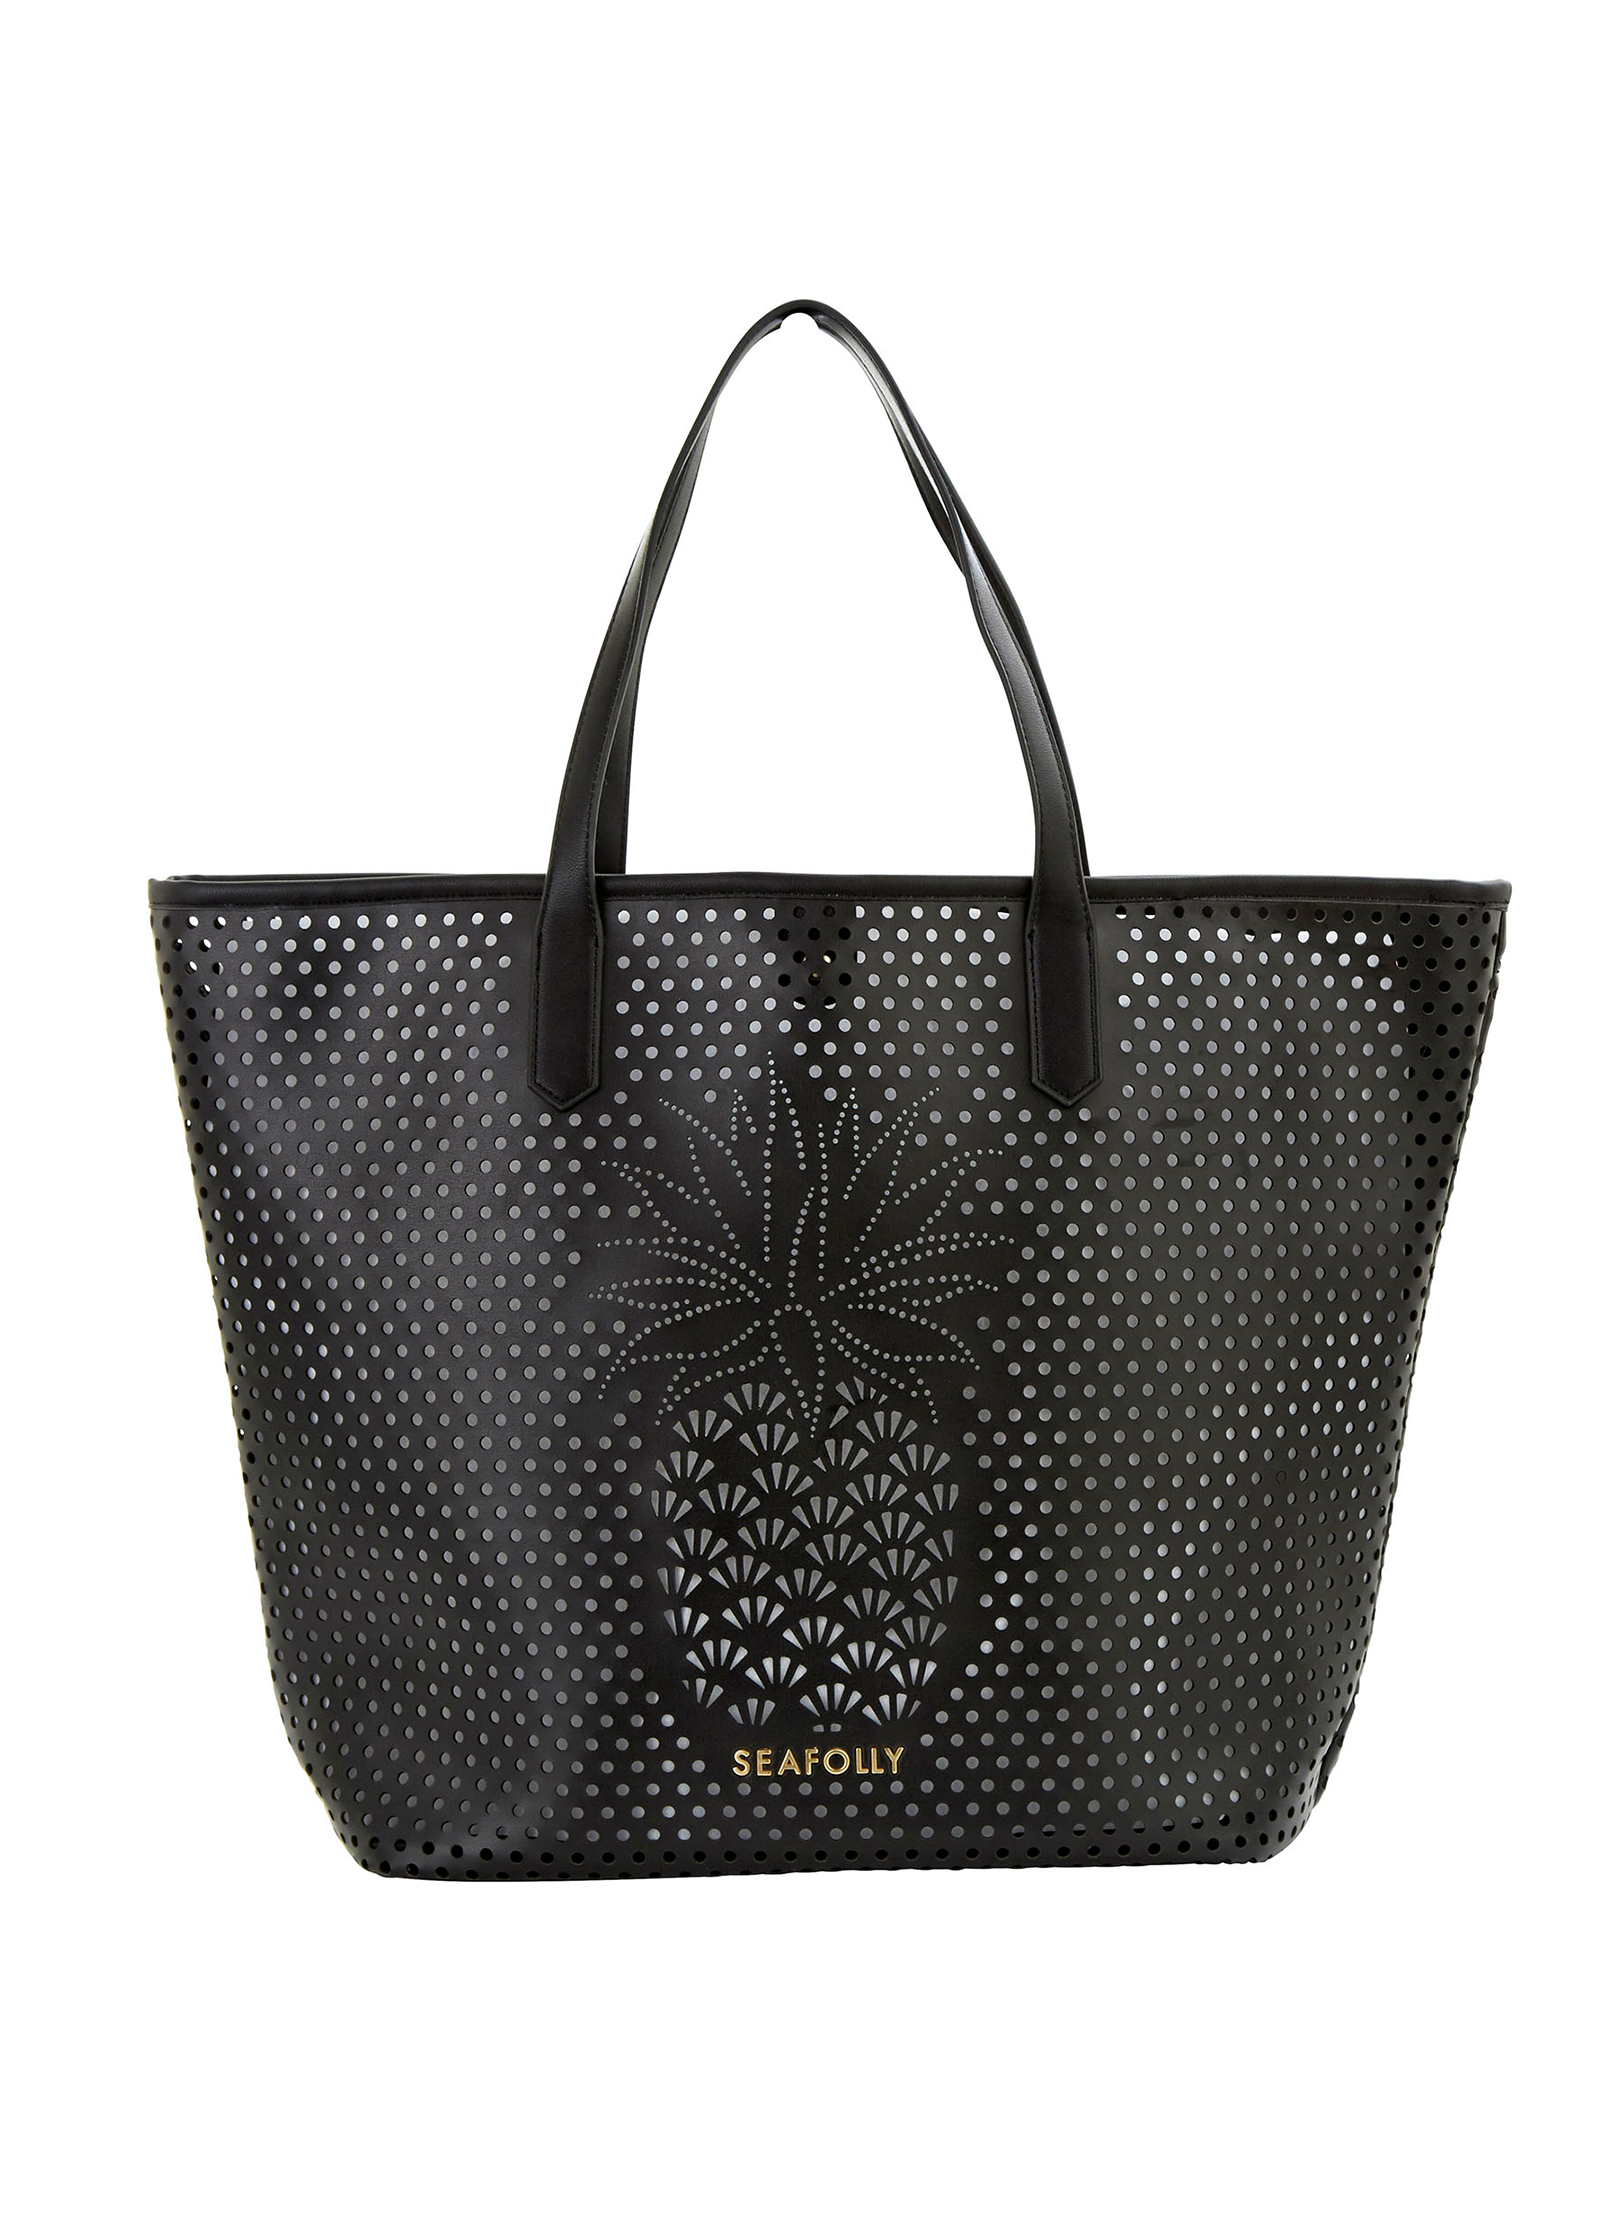 Seafolly Carried Away Pineapple Tote - Black